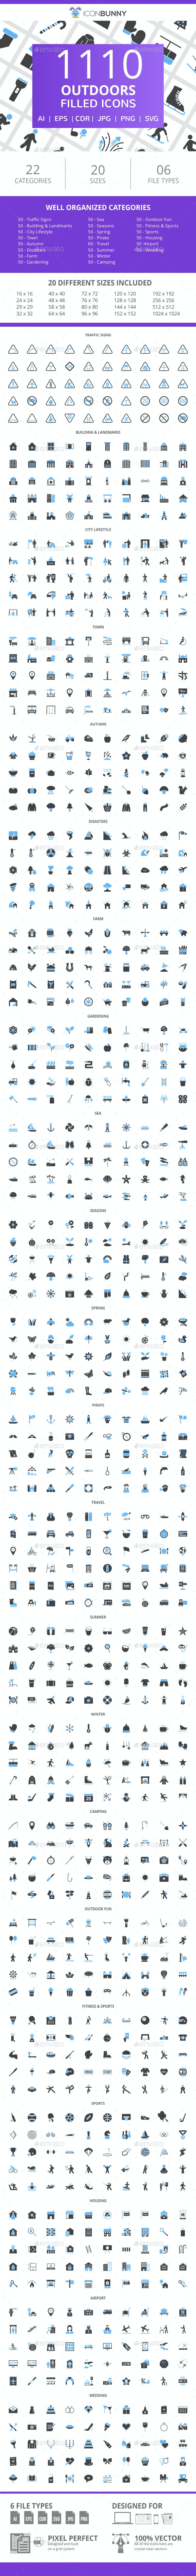 1110 Outdoors Filled Blue & Black Icons - Icons